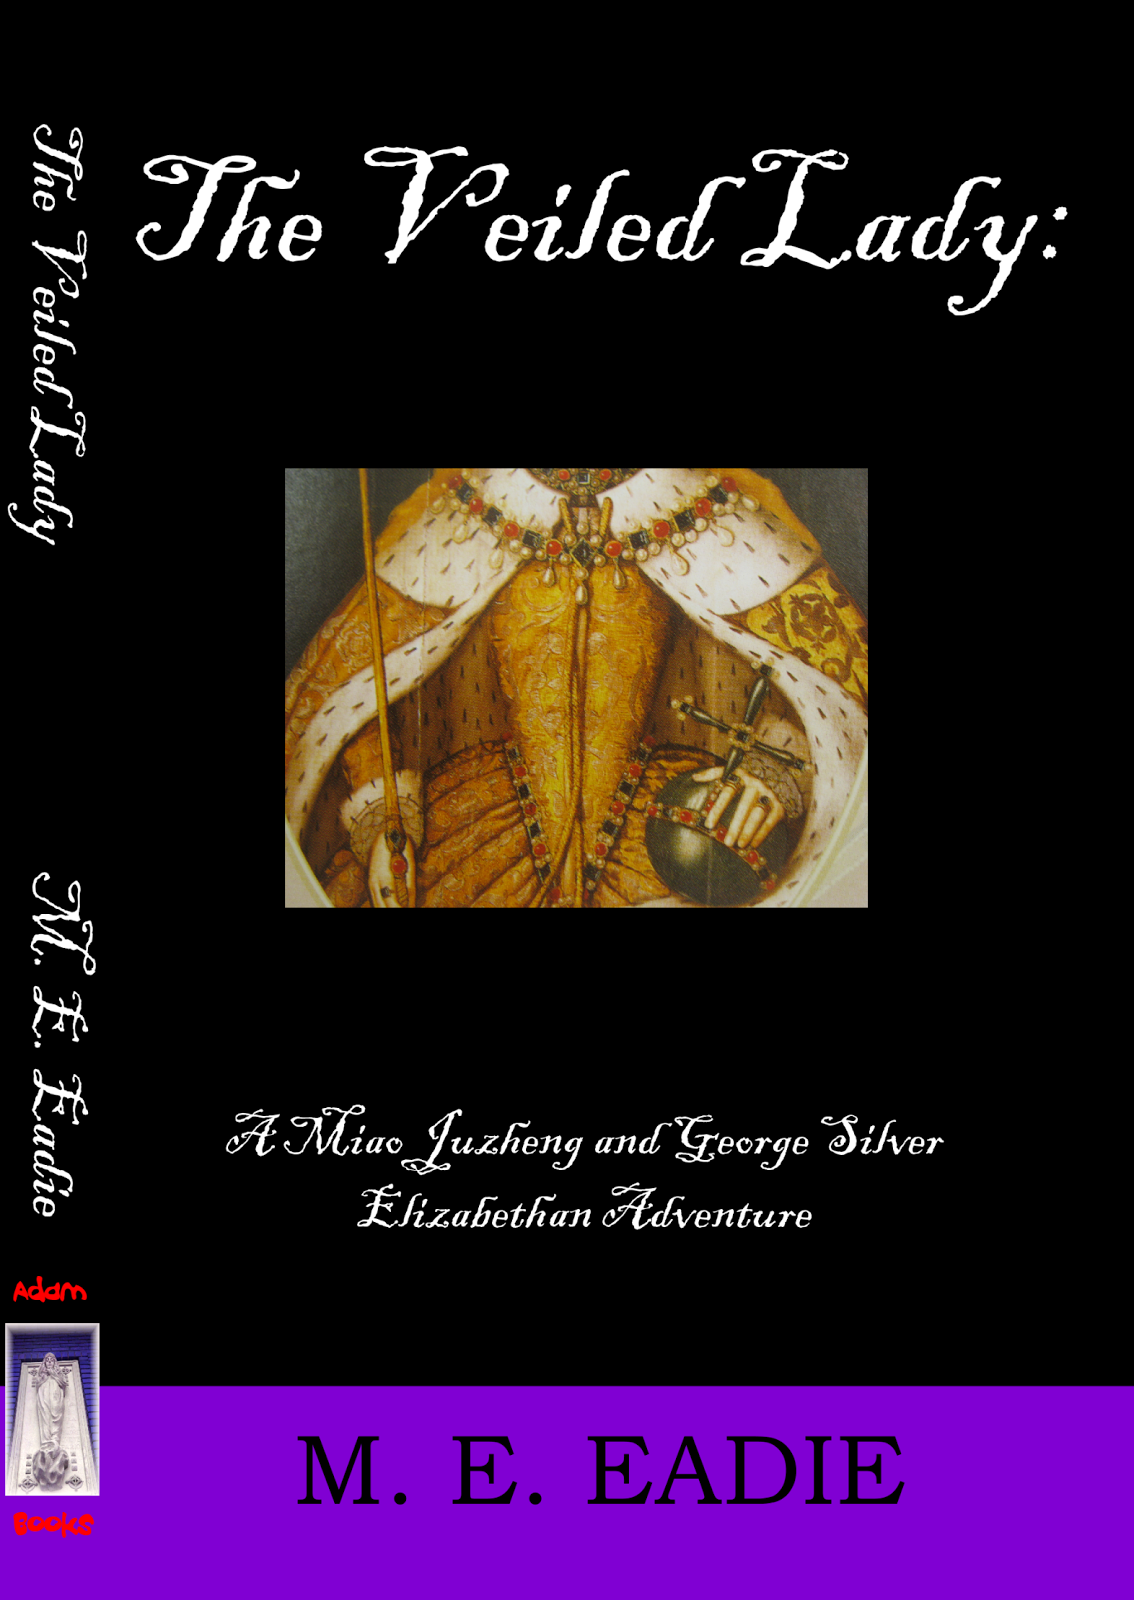 The Veiled Lady: A Miao Juzheng and George Silver Elizabethan Adventure